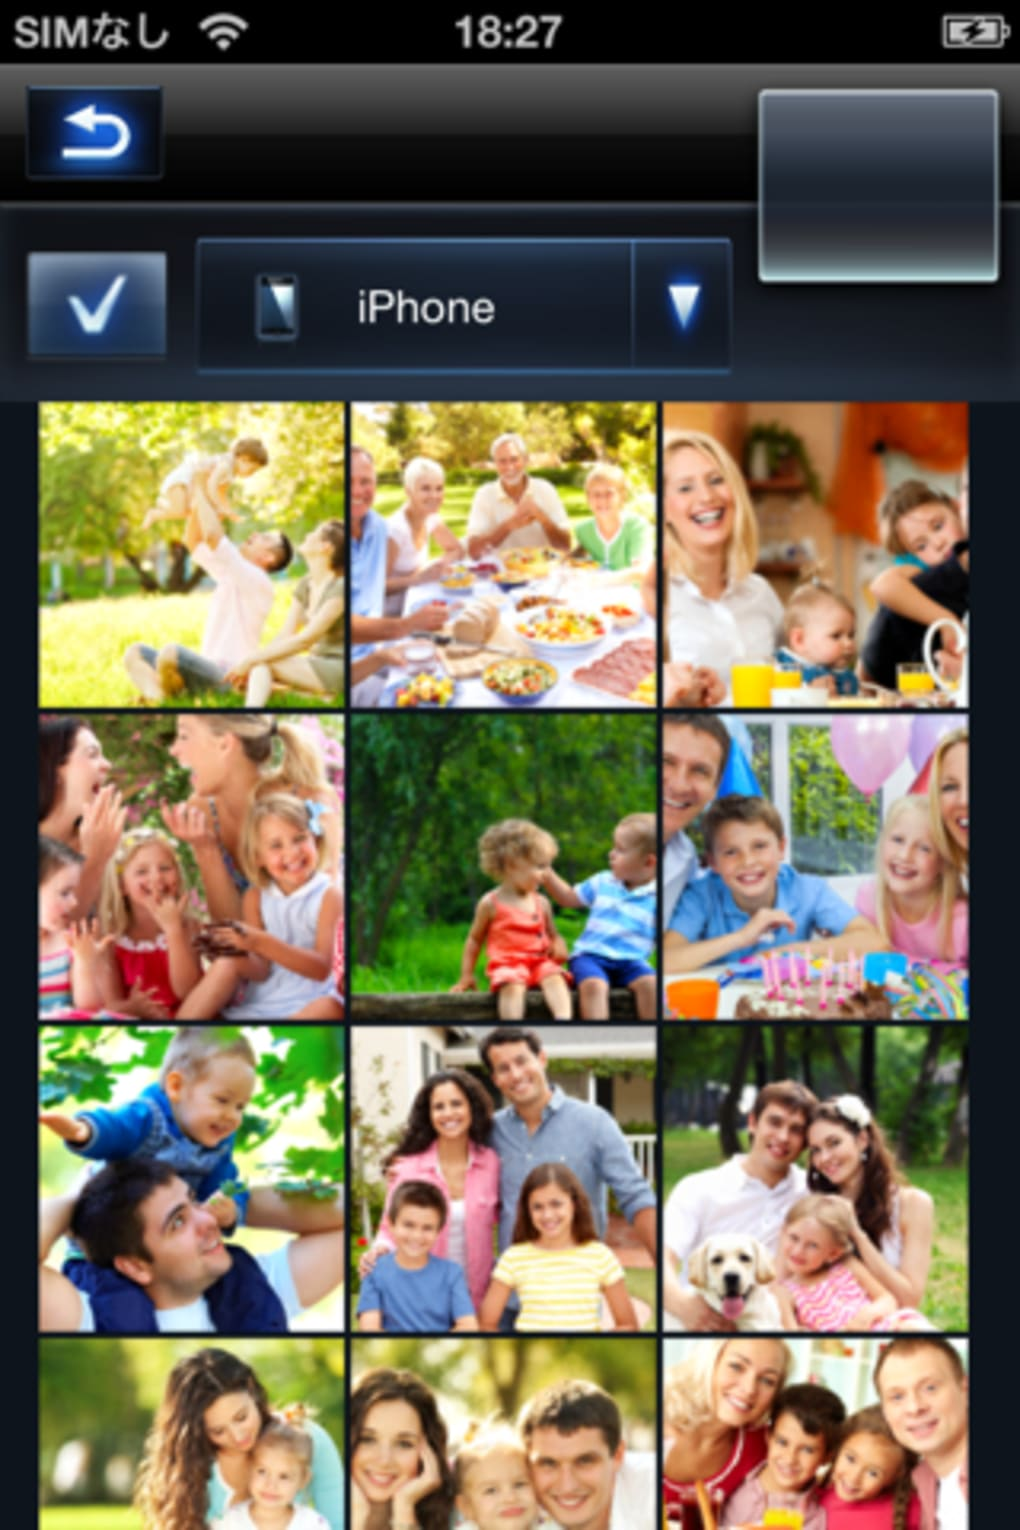 Panasonic TV Remote 2 for iPhone - Download